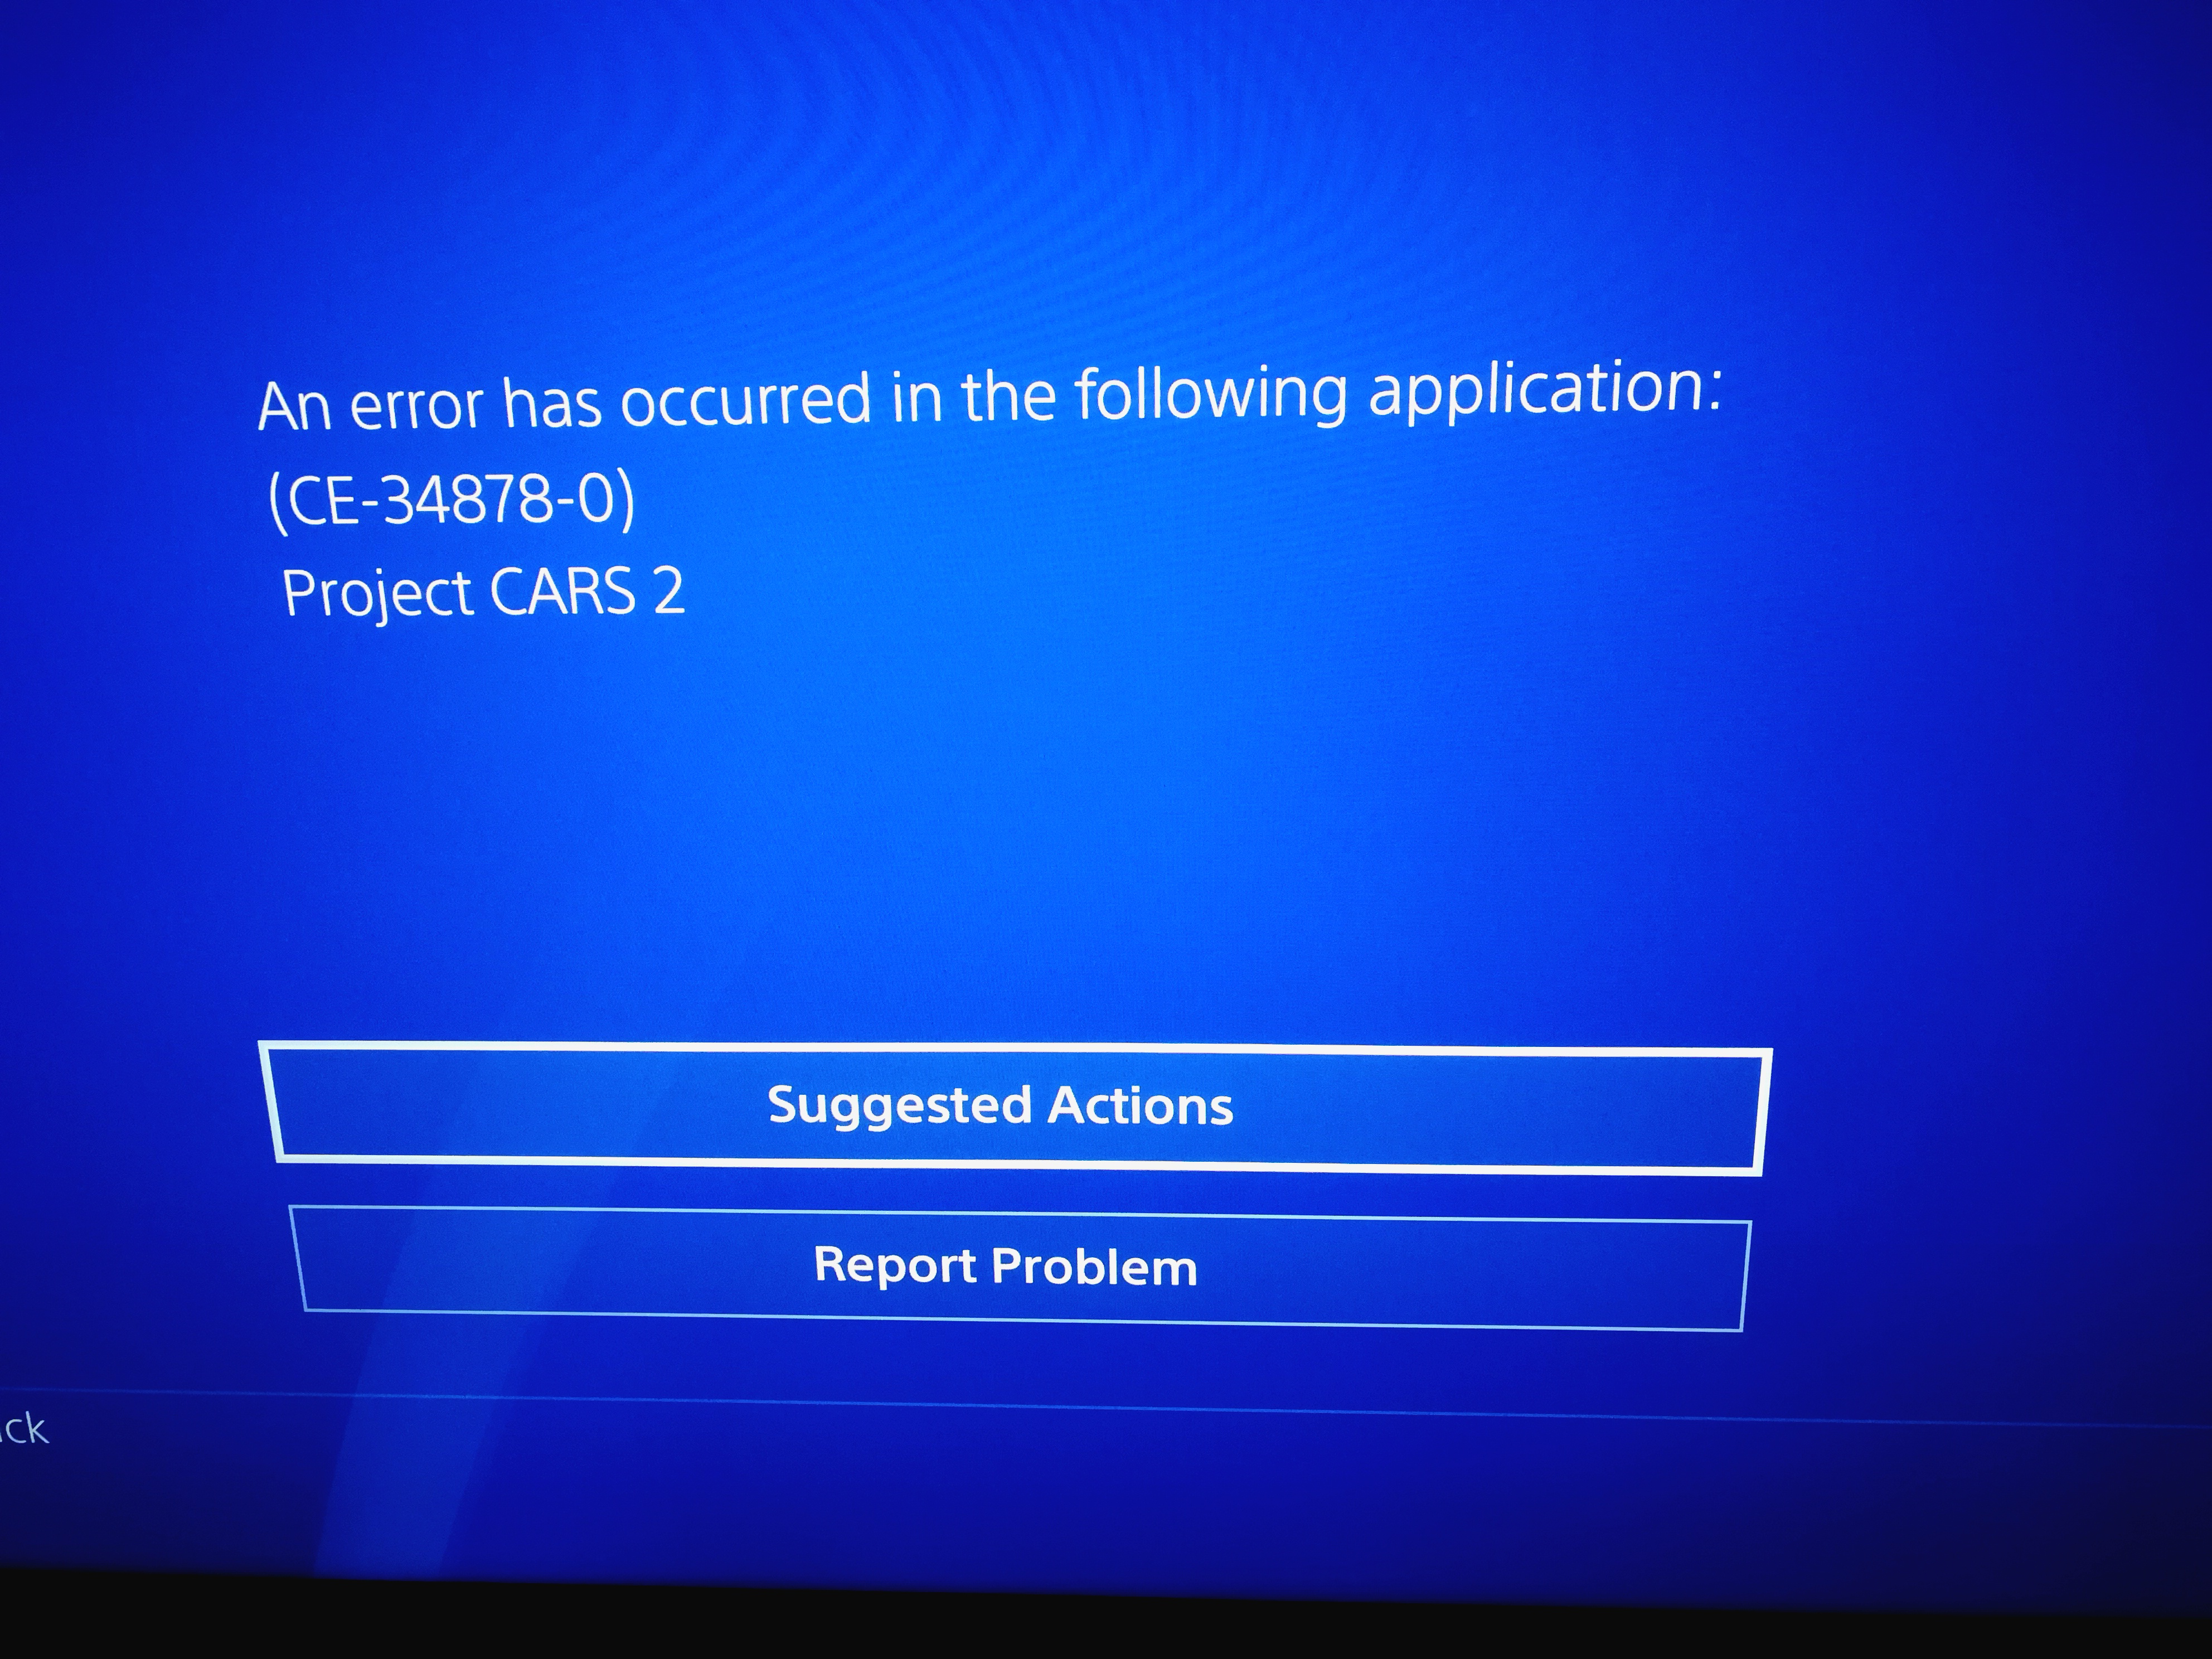 Fixed] ce-34878-0 crashes [Archive] - Project CARS Official Forum